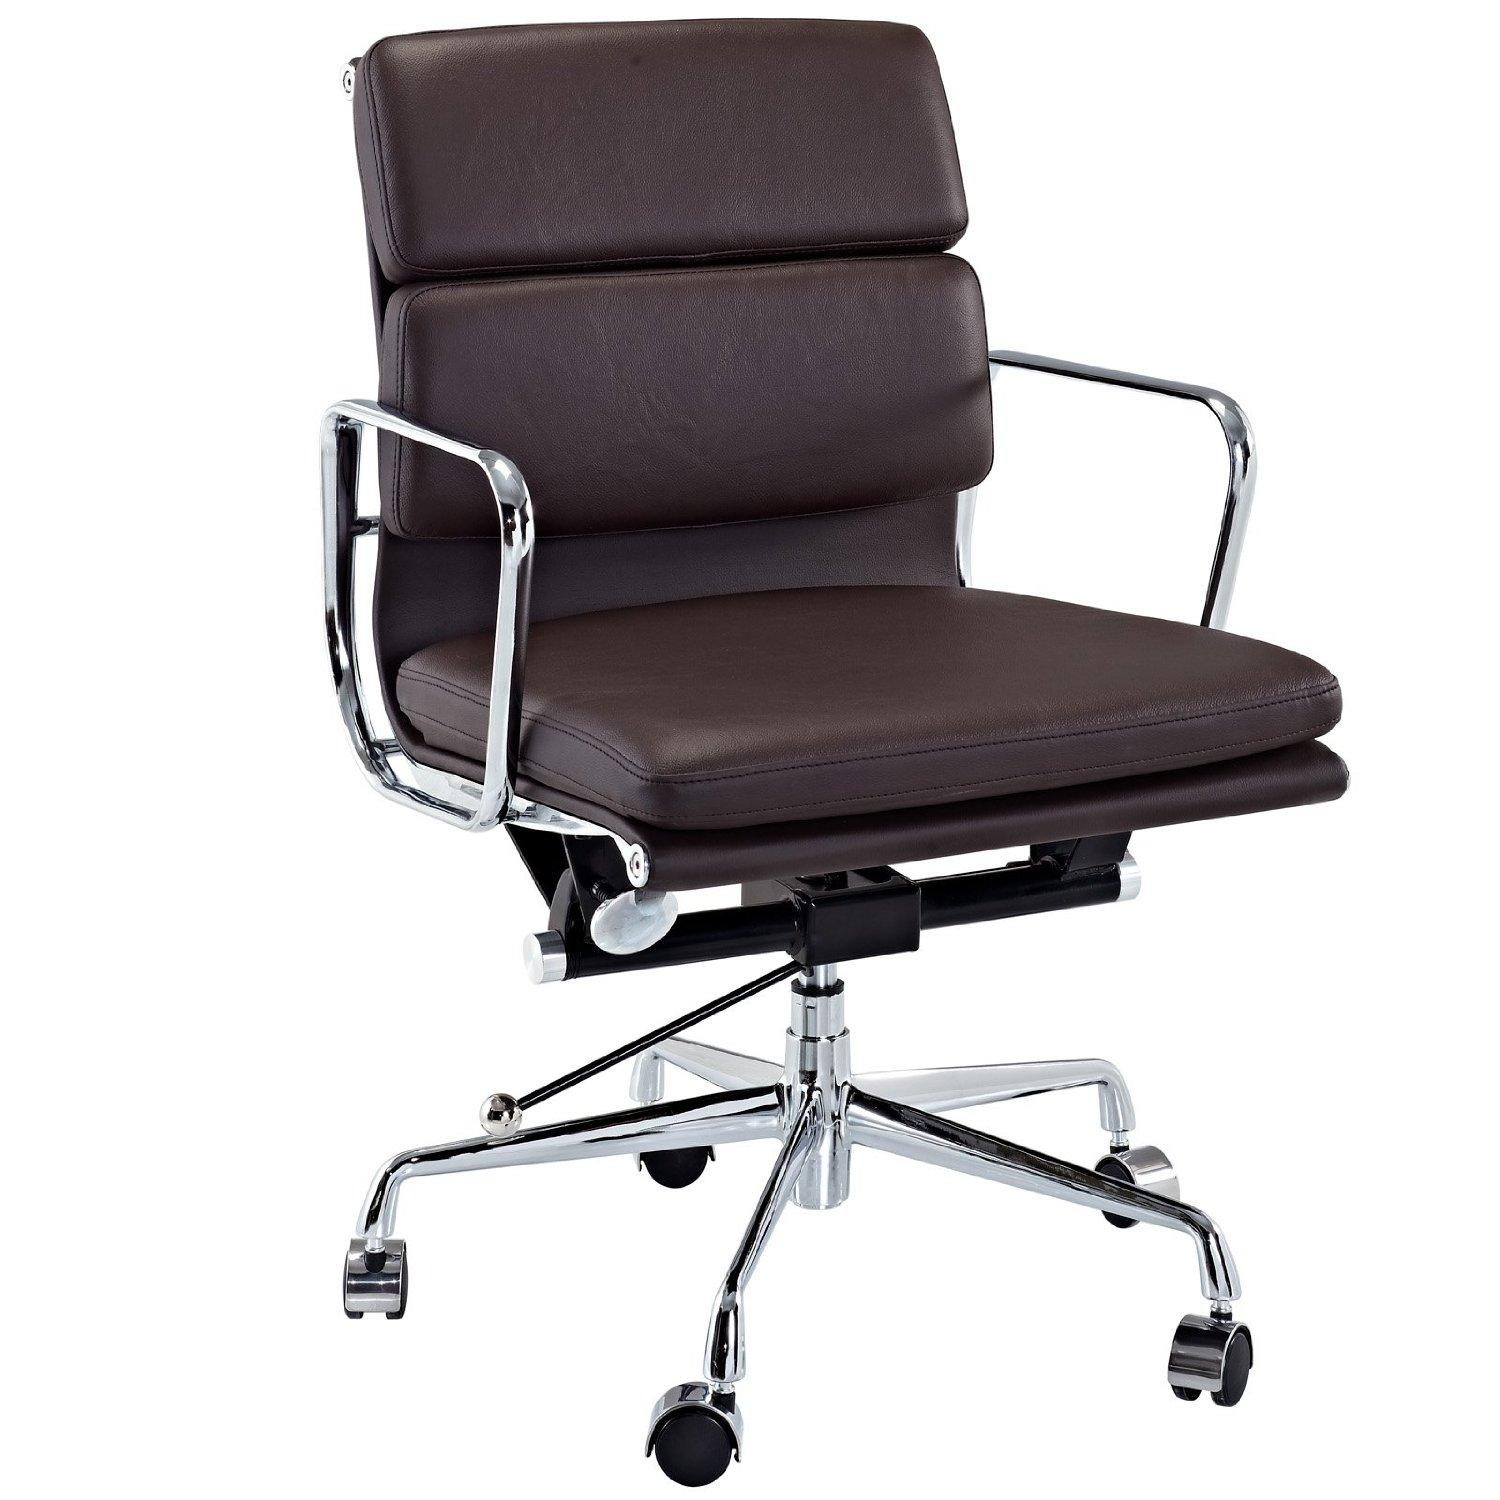 Modway Discovery Mid Back Leather Conference Office Chair In Brown Genuine Leather